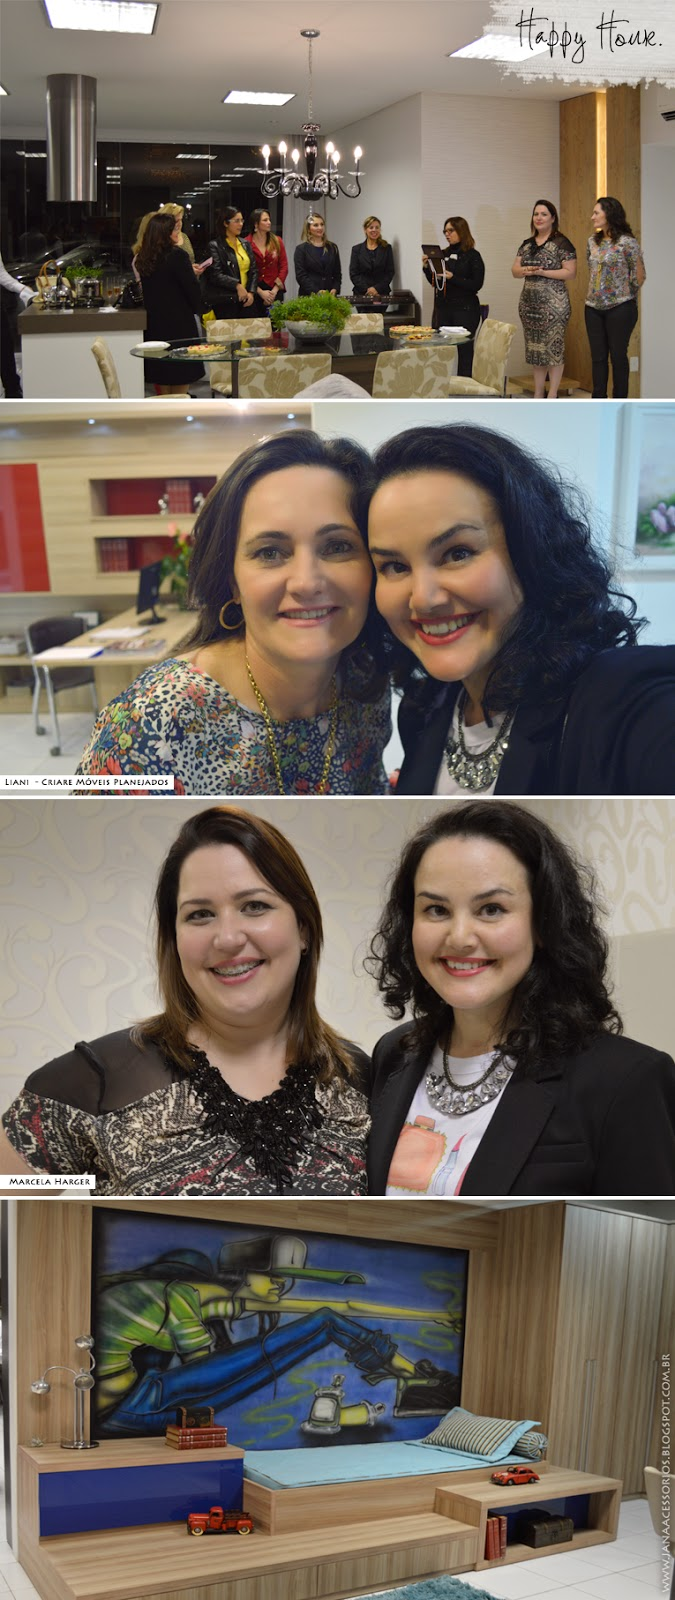 Criare, Joinville, Blogueira, Marcela Harger, Jana, Blogger, Happy Hour